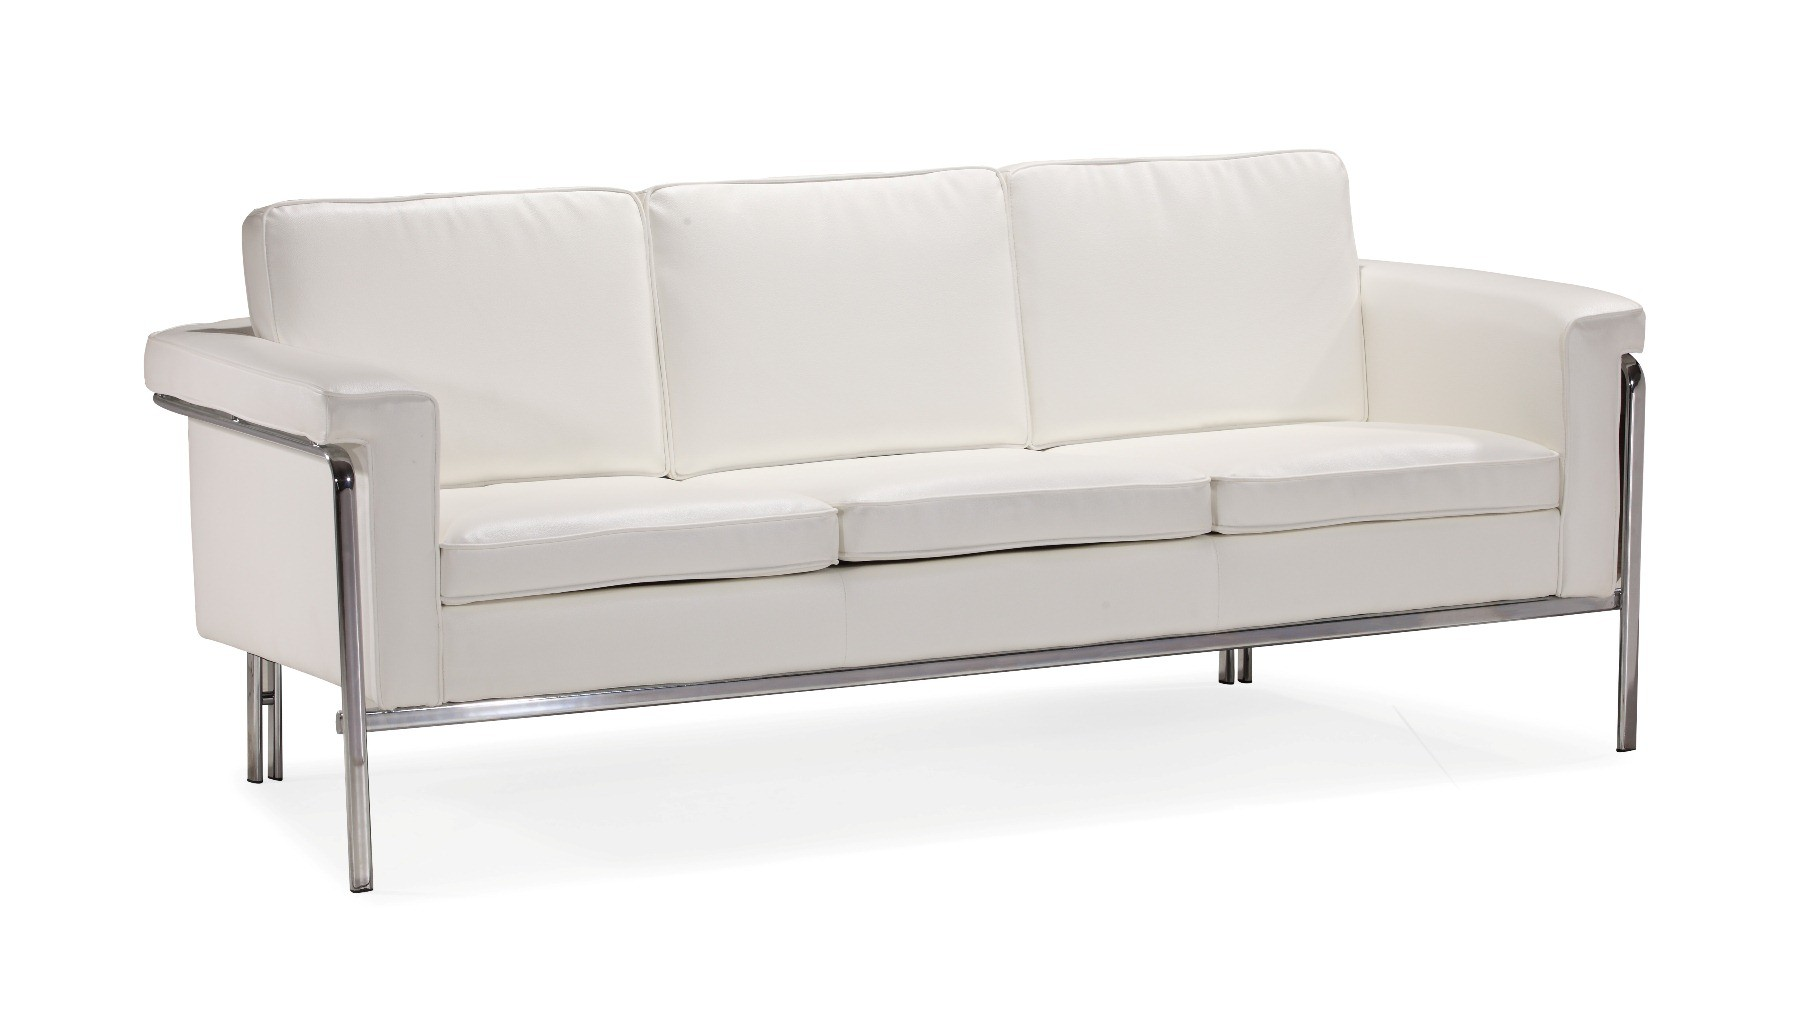 White or black leather contemporary sofa with chrome legs for Contemporary couches